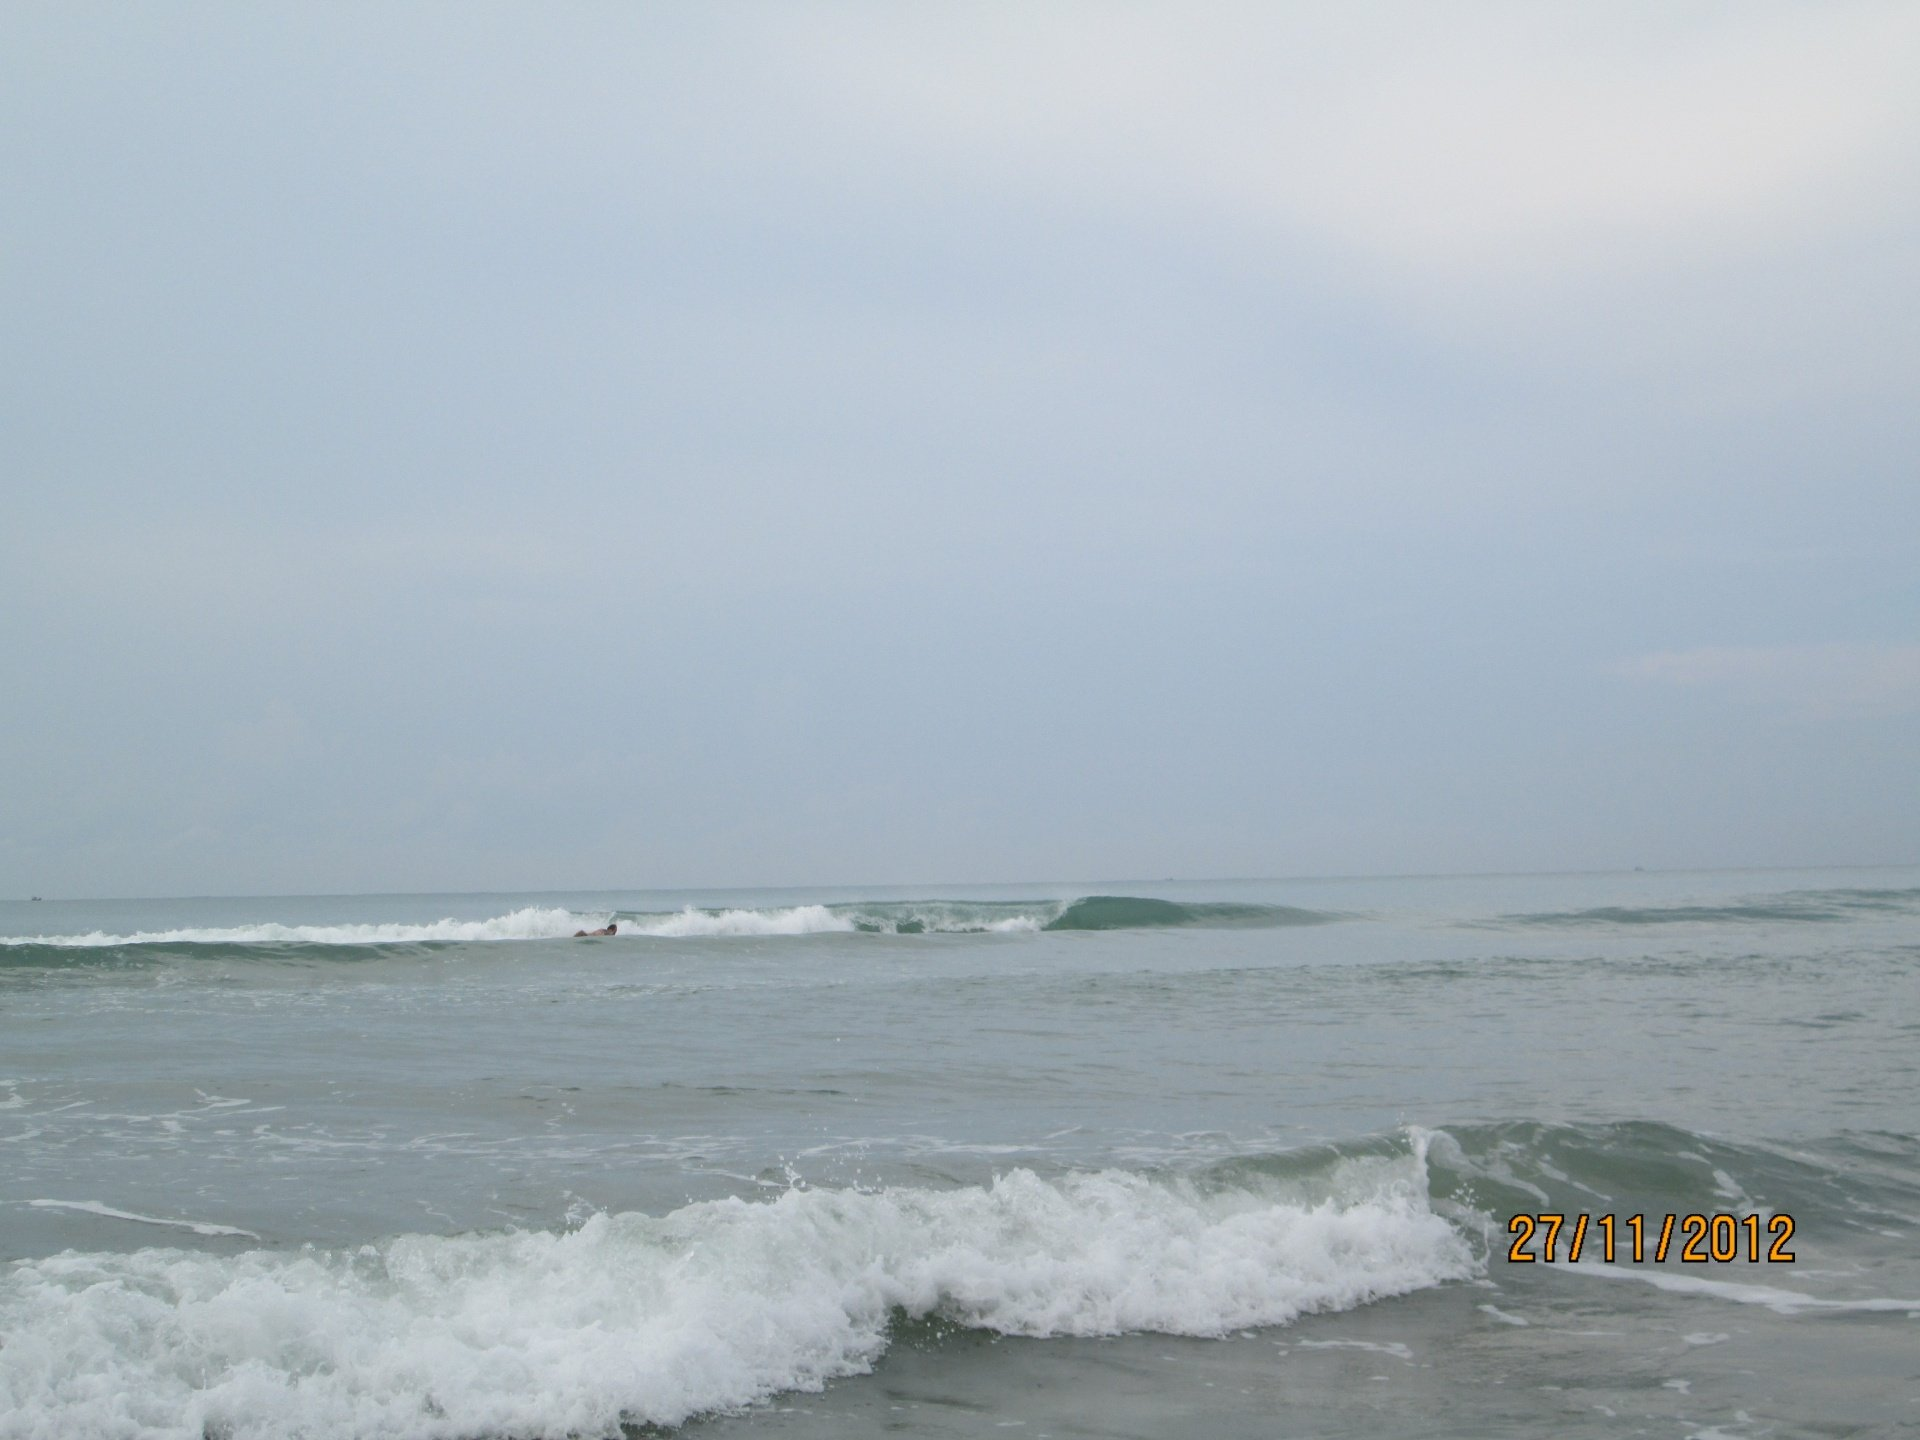 RAYONG -MAE RAMPHUNG BEACH SURF/ SCHOOL's photo of Rayong Mae Ramphung